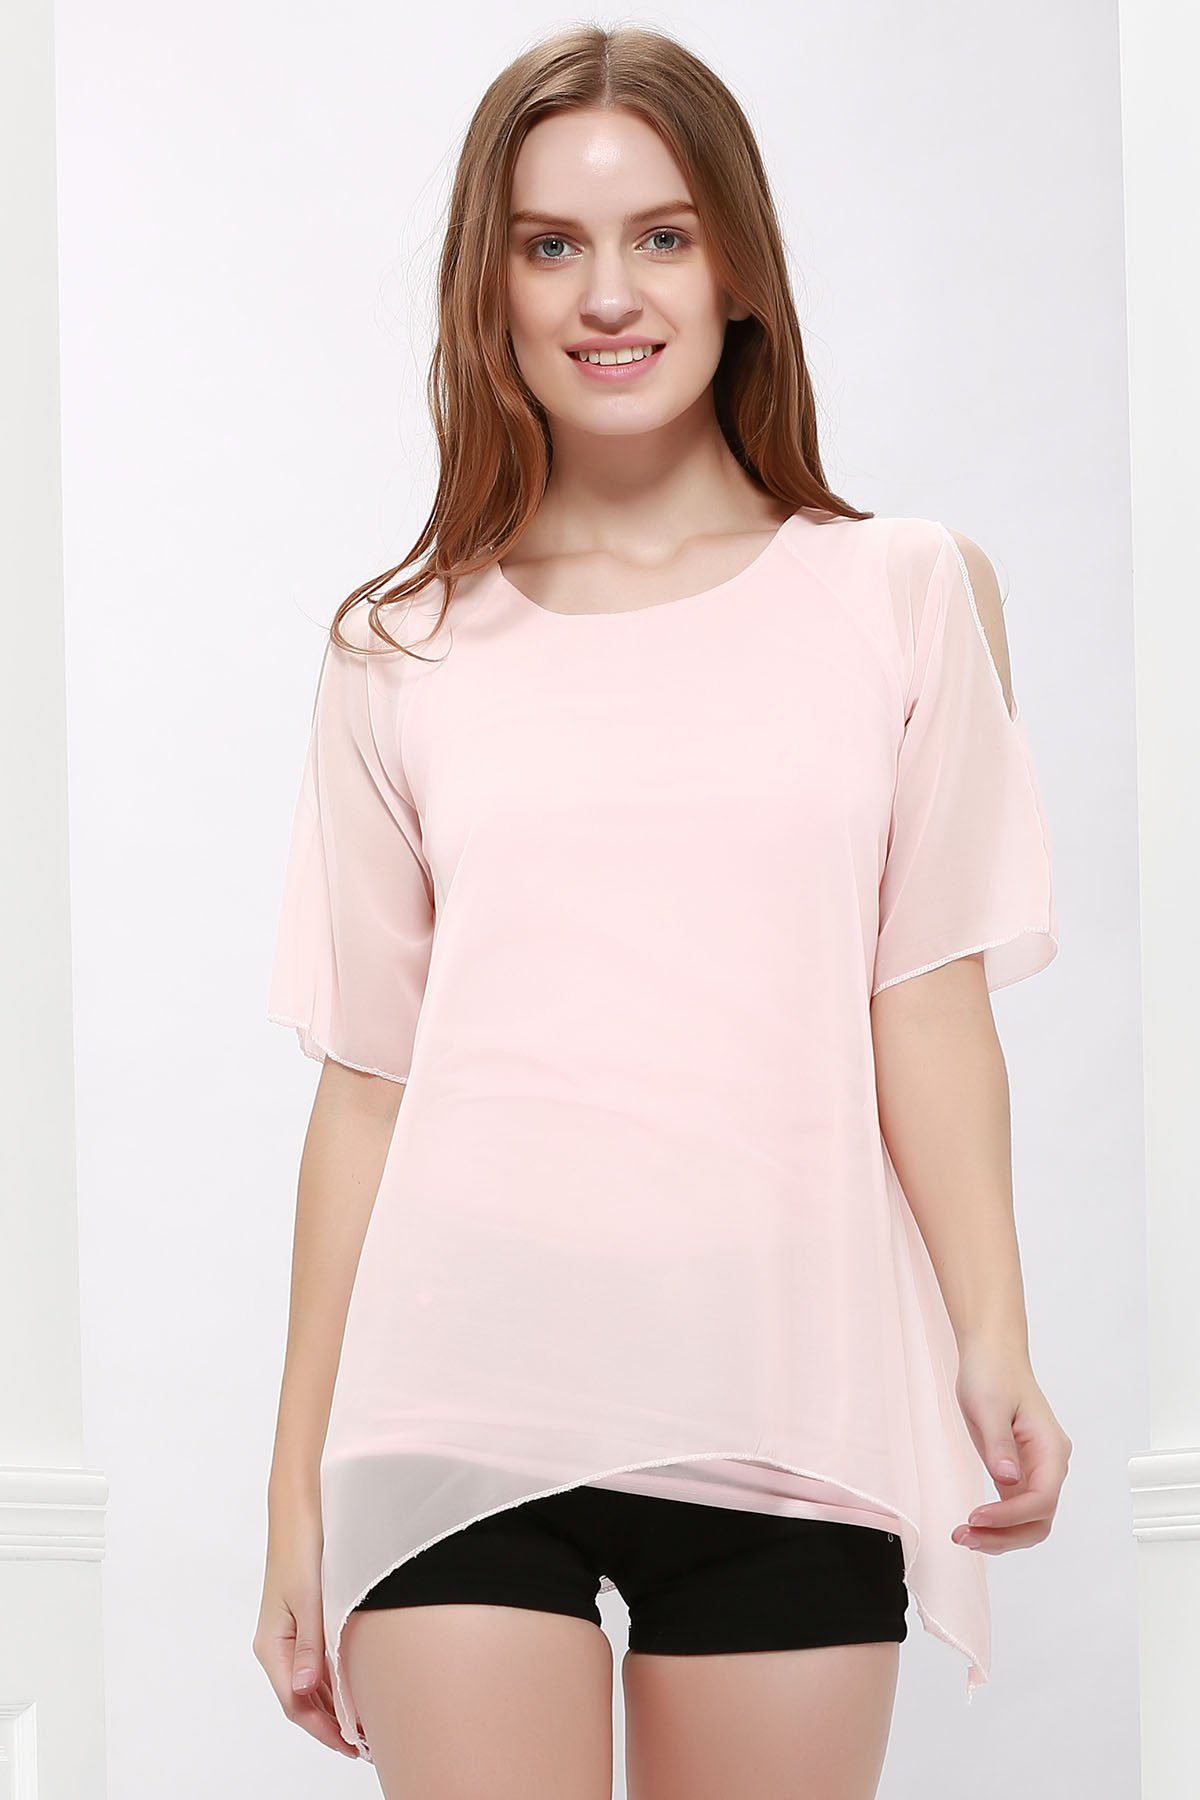 Fairy Style Flowing Texture Chiffon Women's Blouse